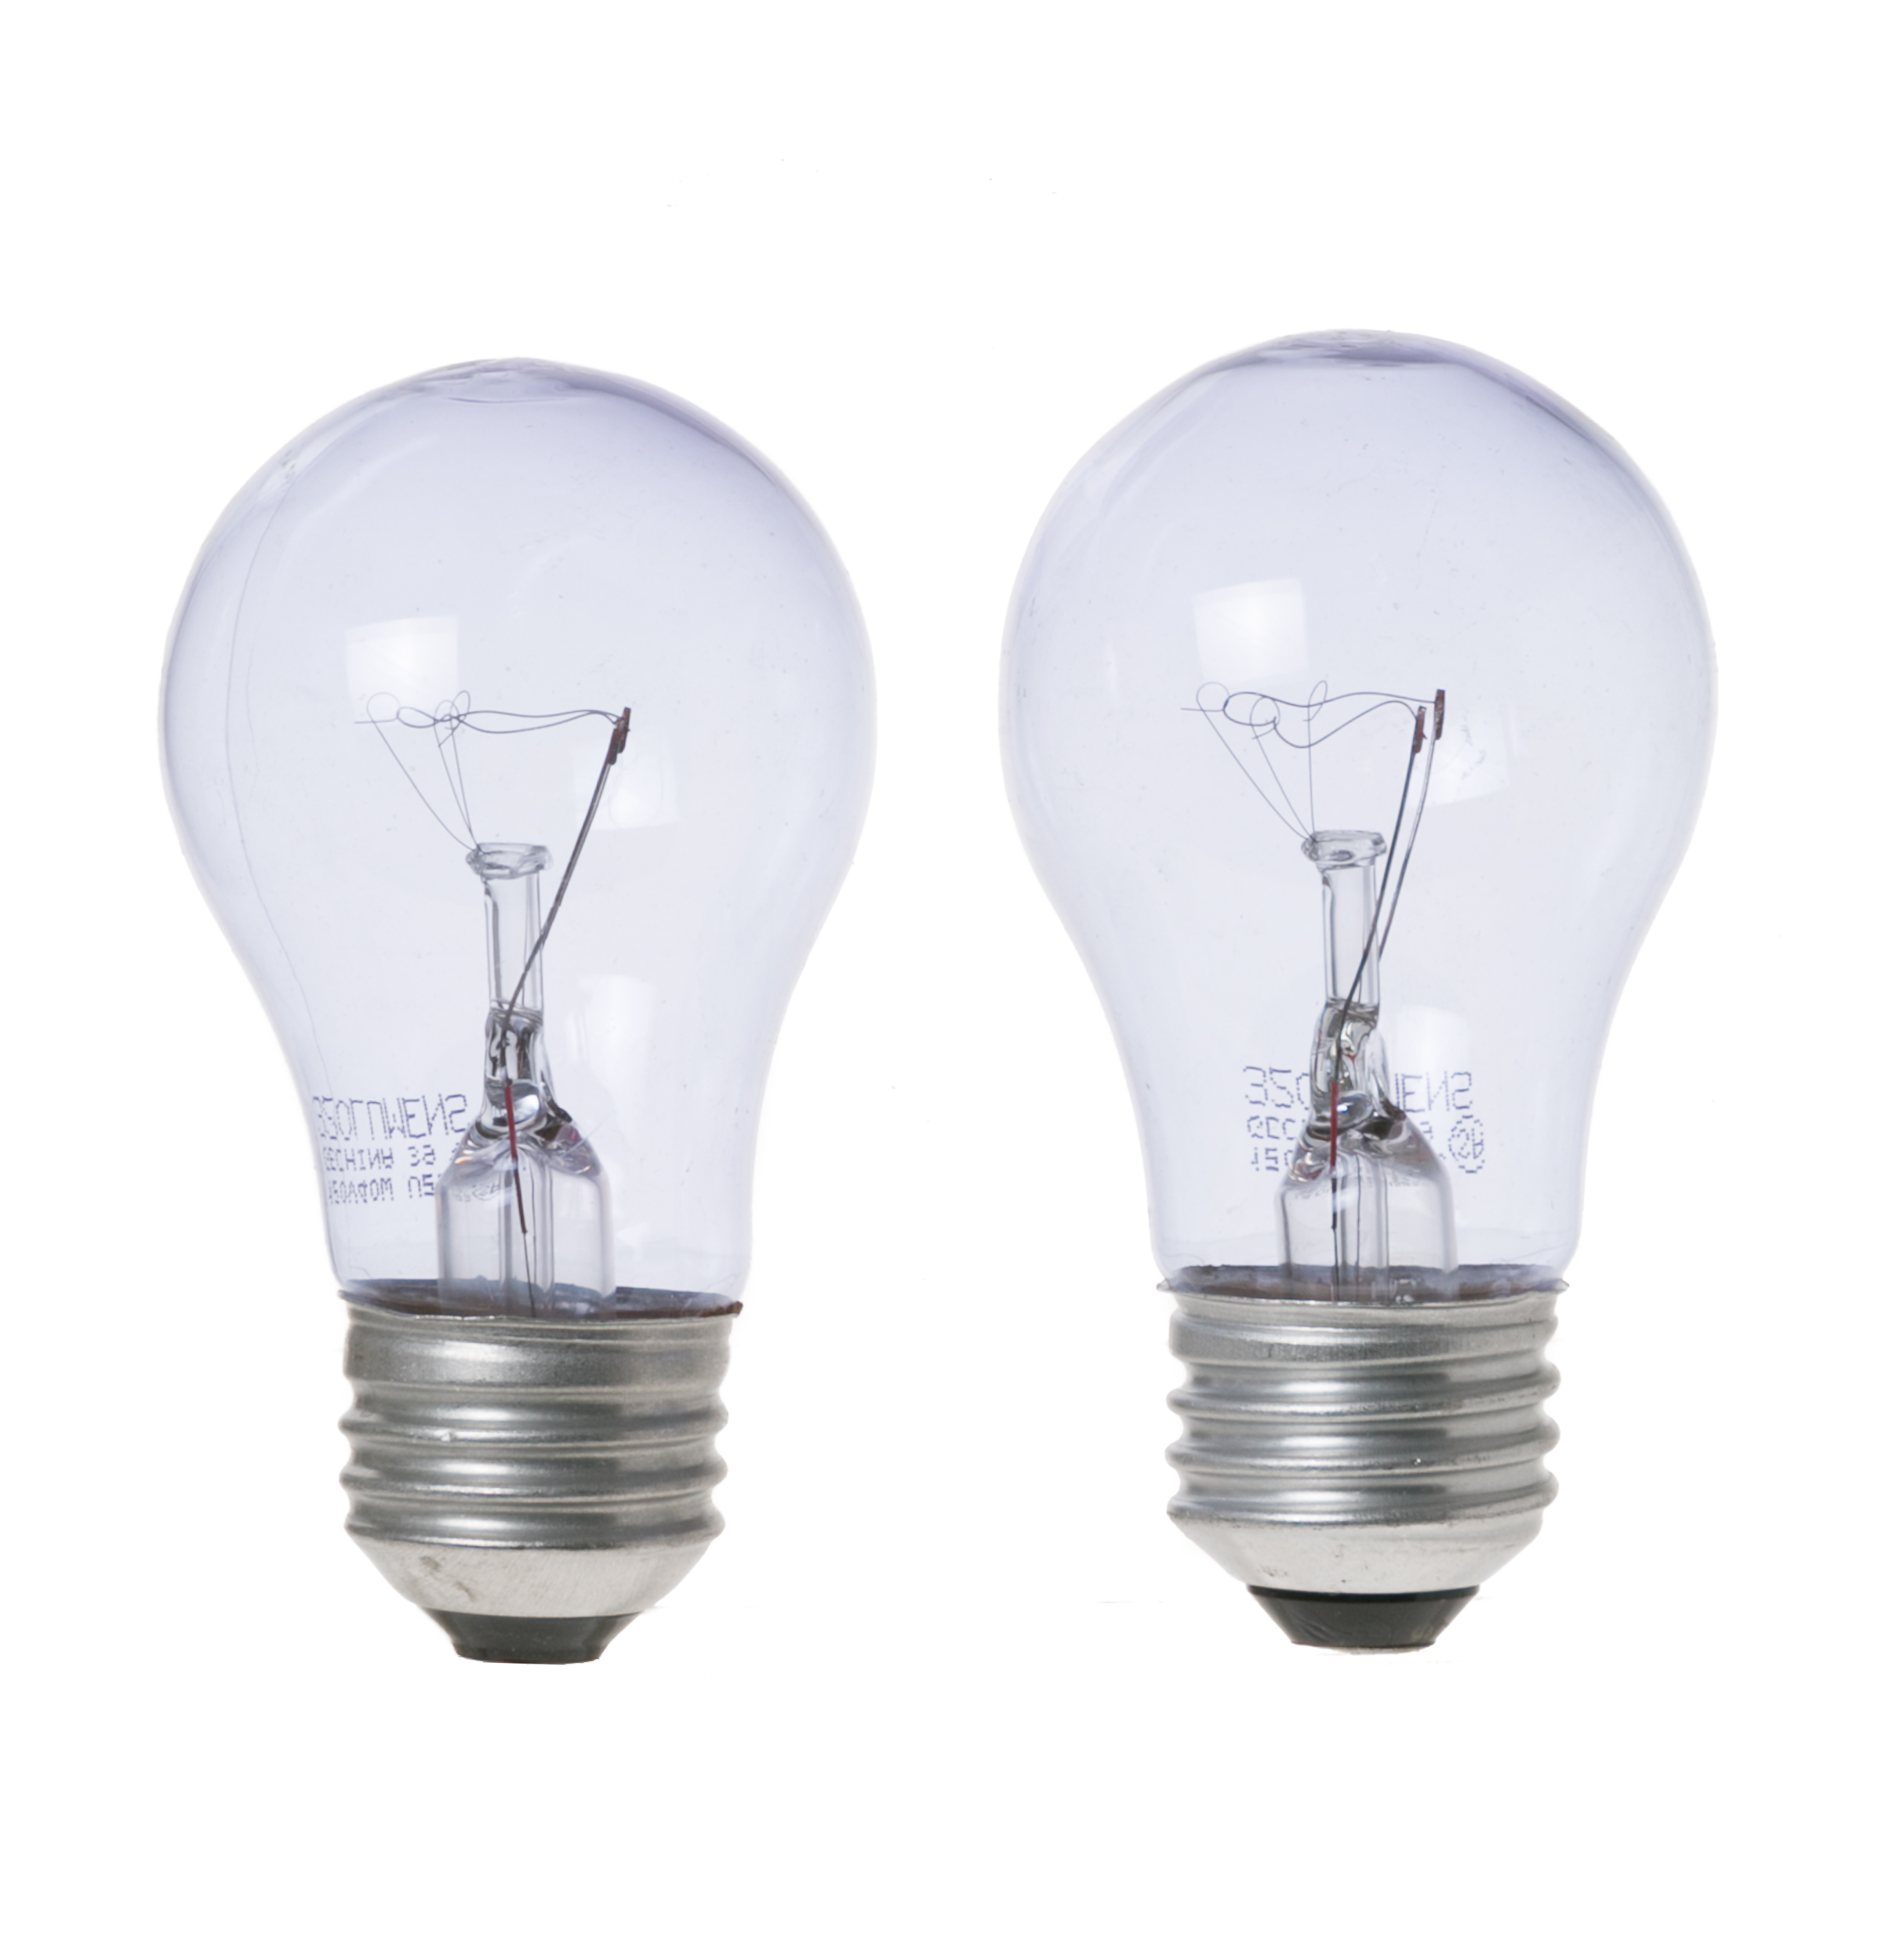 40a15rvl 40 Watt Reveal Appliance Light Bulb 2 Pack The Monogram Collection